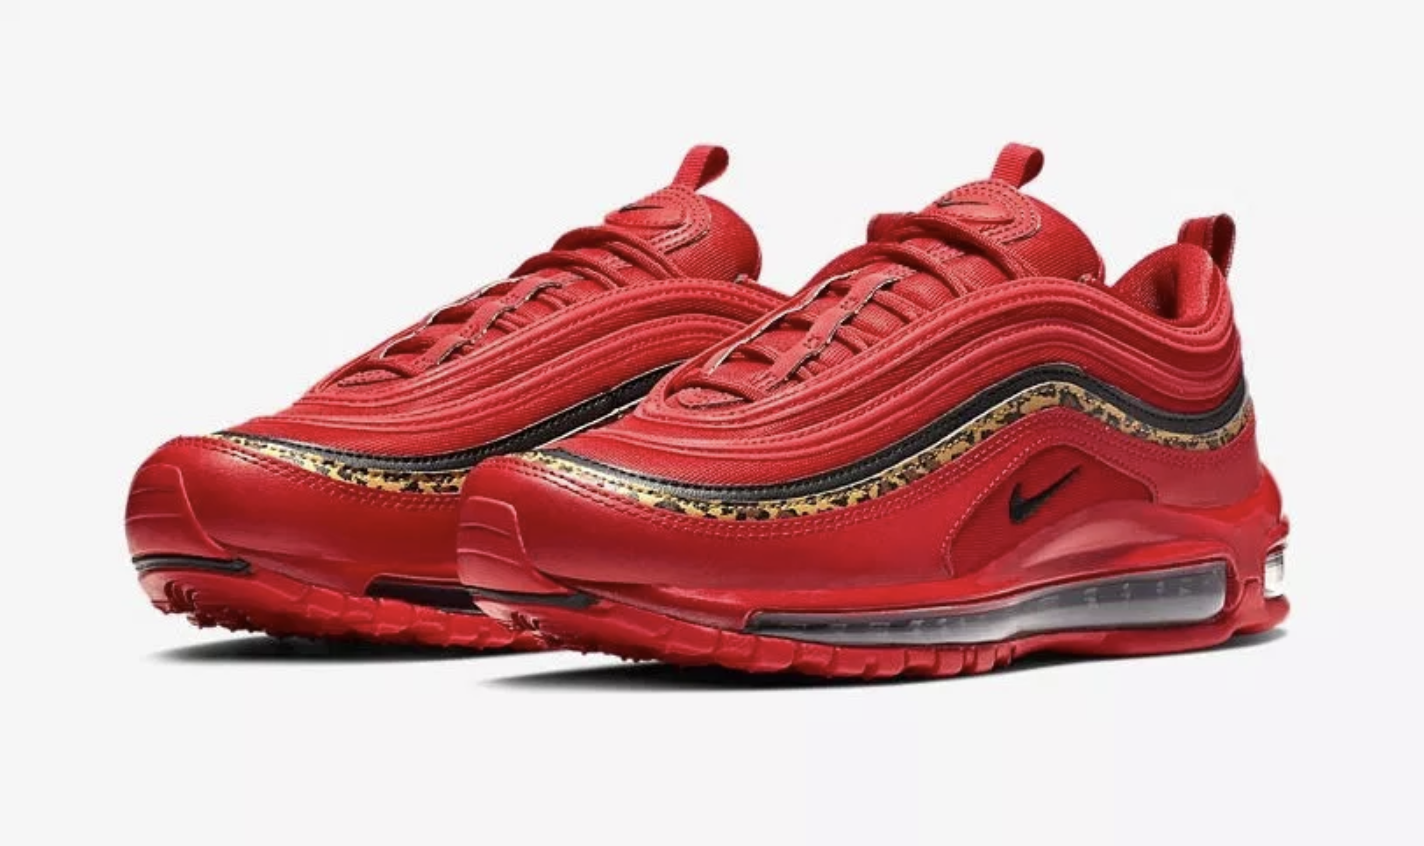 low priced 99f81 948e4 Leopard Print Adds A Wild Touch To Nike s Air Max 97   Upcoming ...